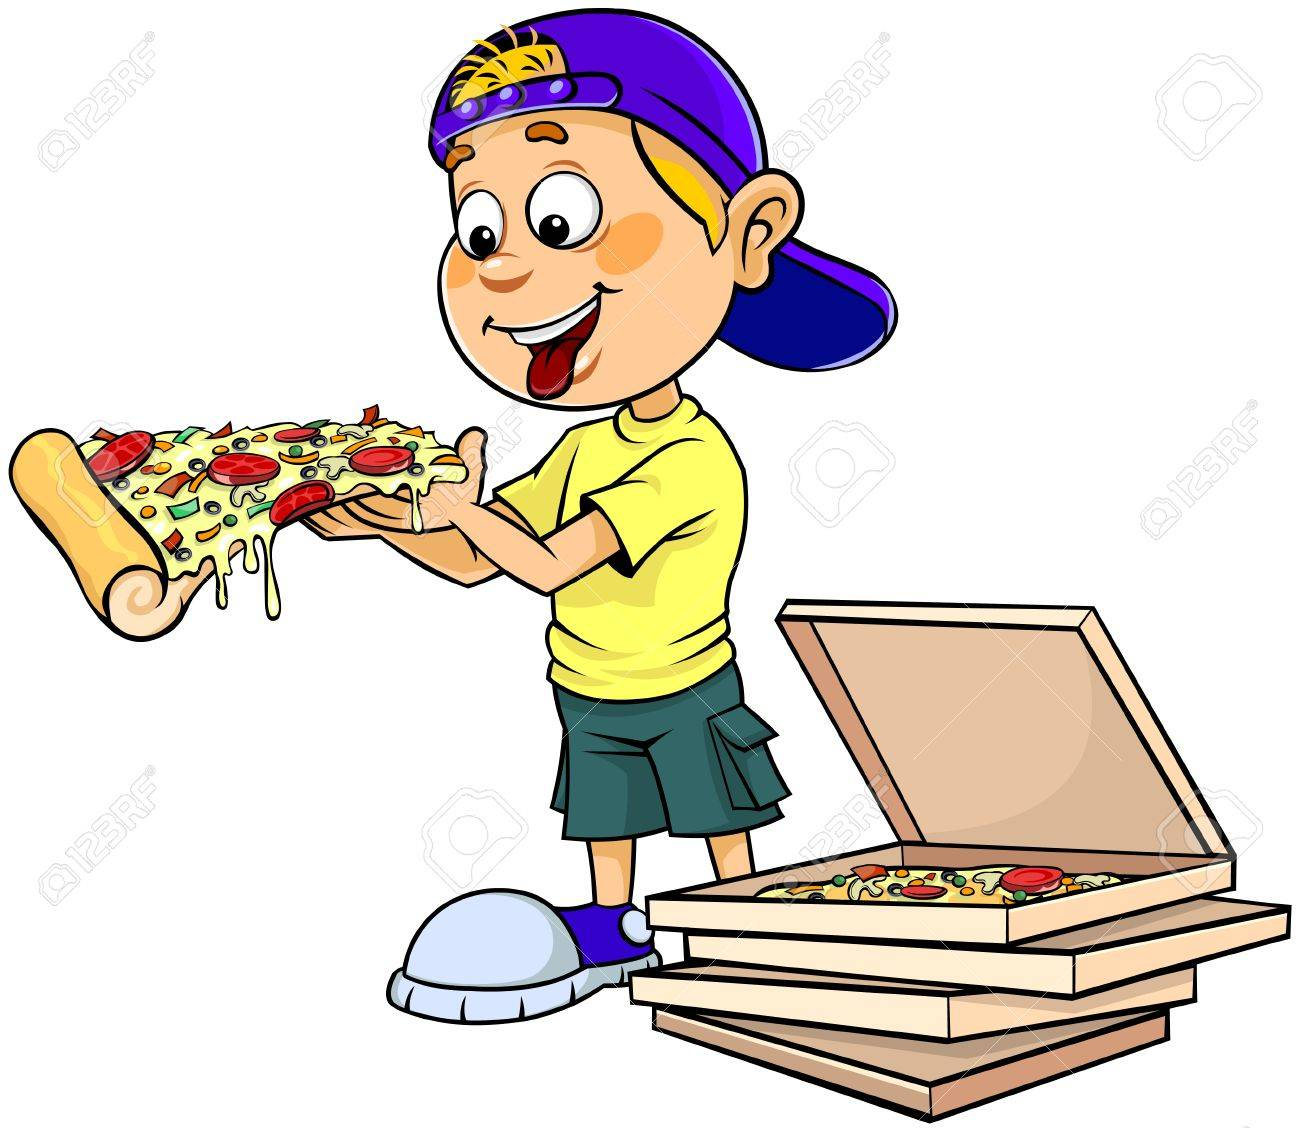 1300x1128 Boy Eating Pizza Clipart Pencil And In Color